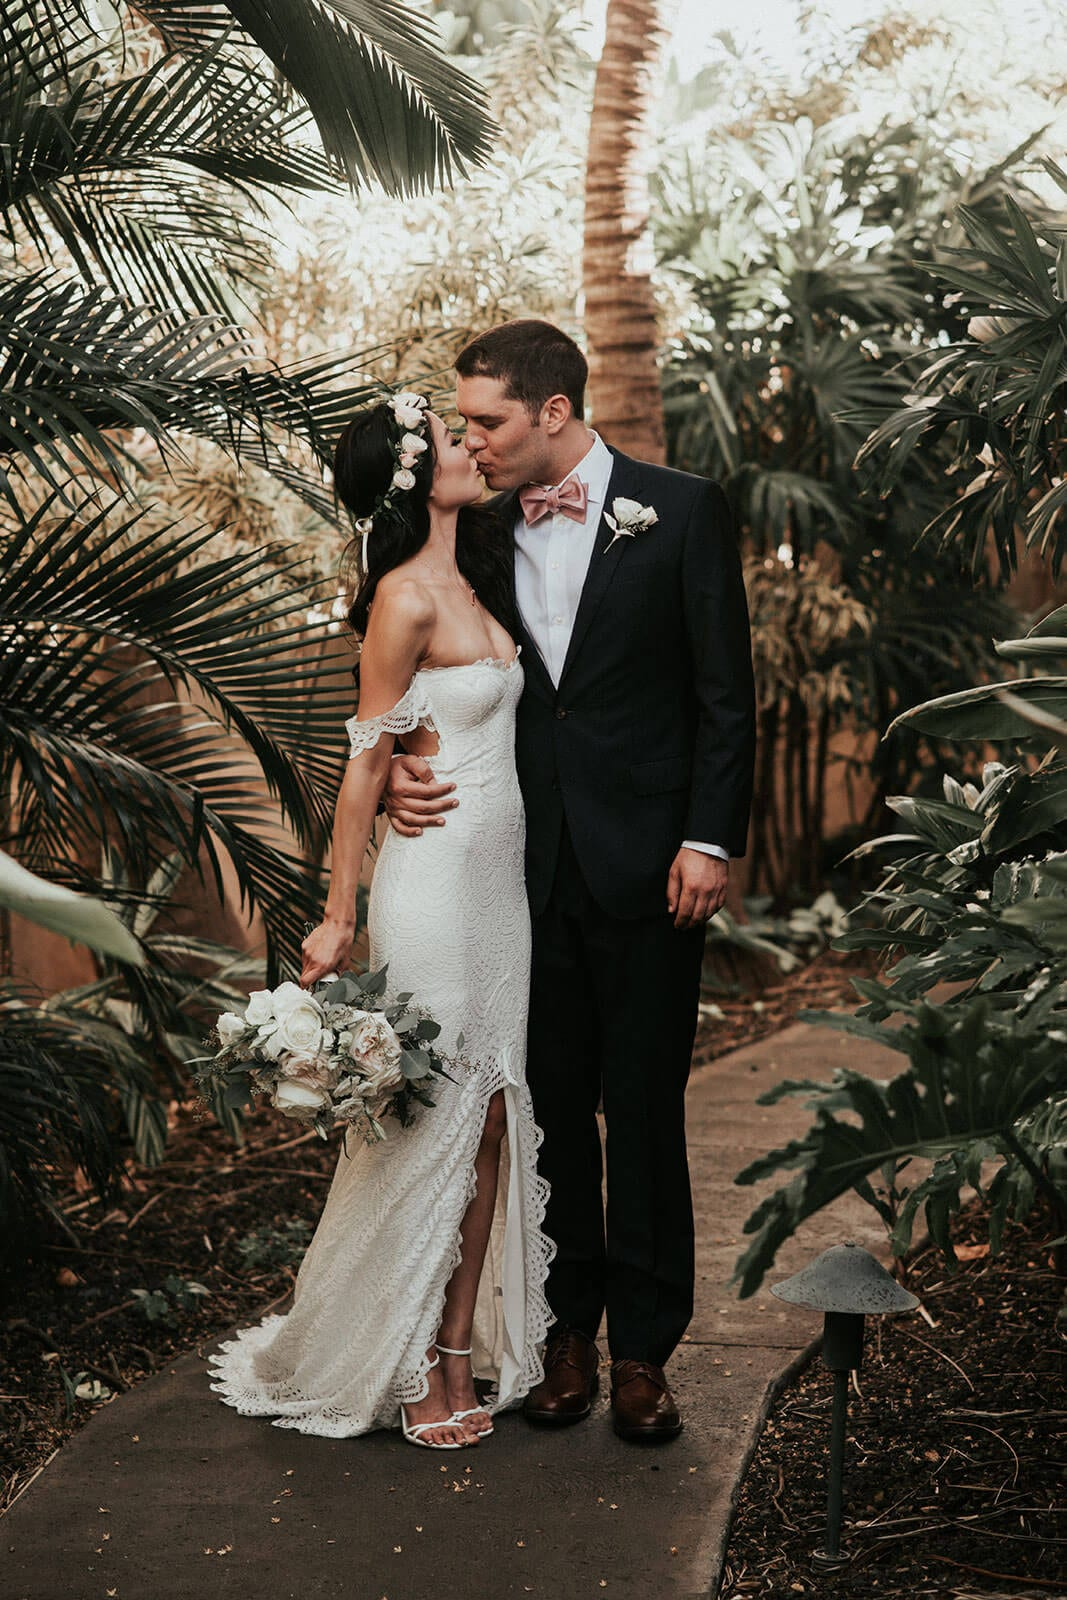 Brunette bride wearing Grace Loves Lace Paloma Gown kissing groom on garden path